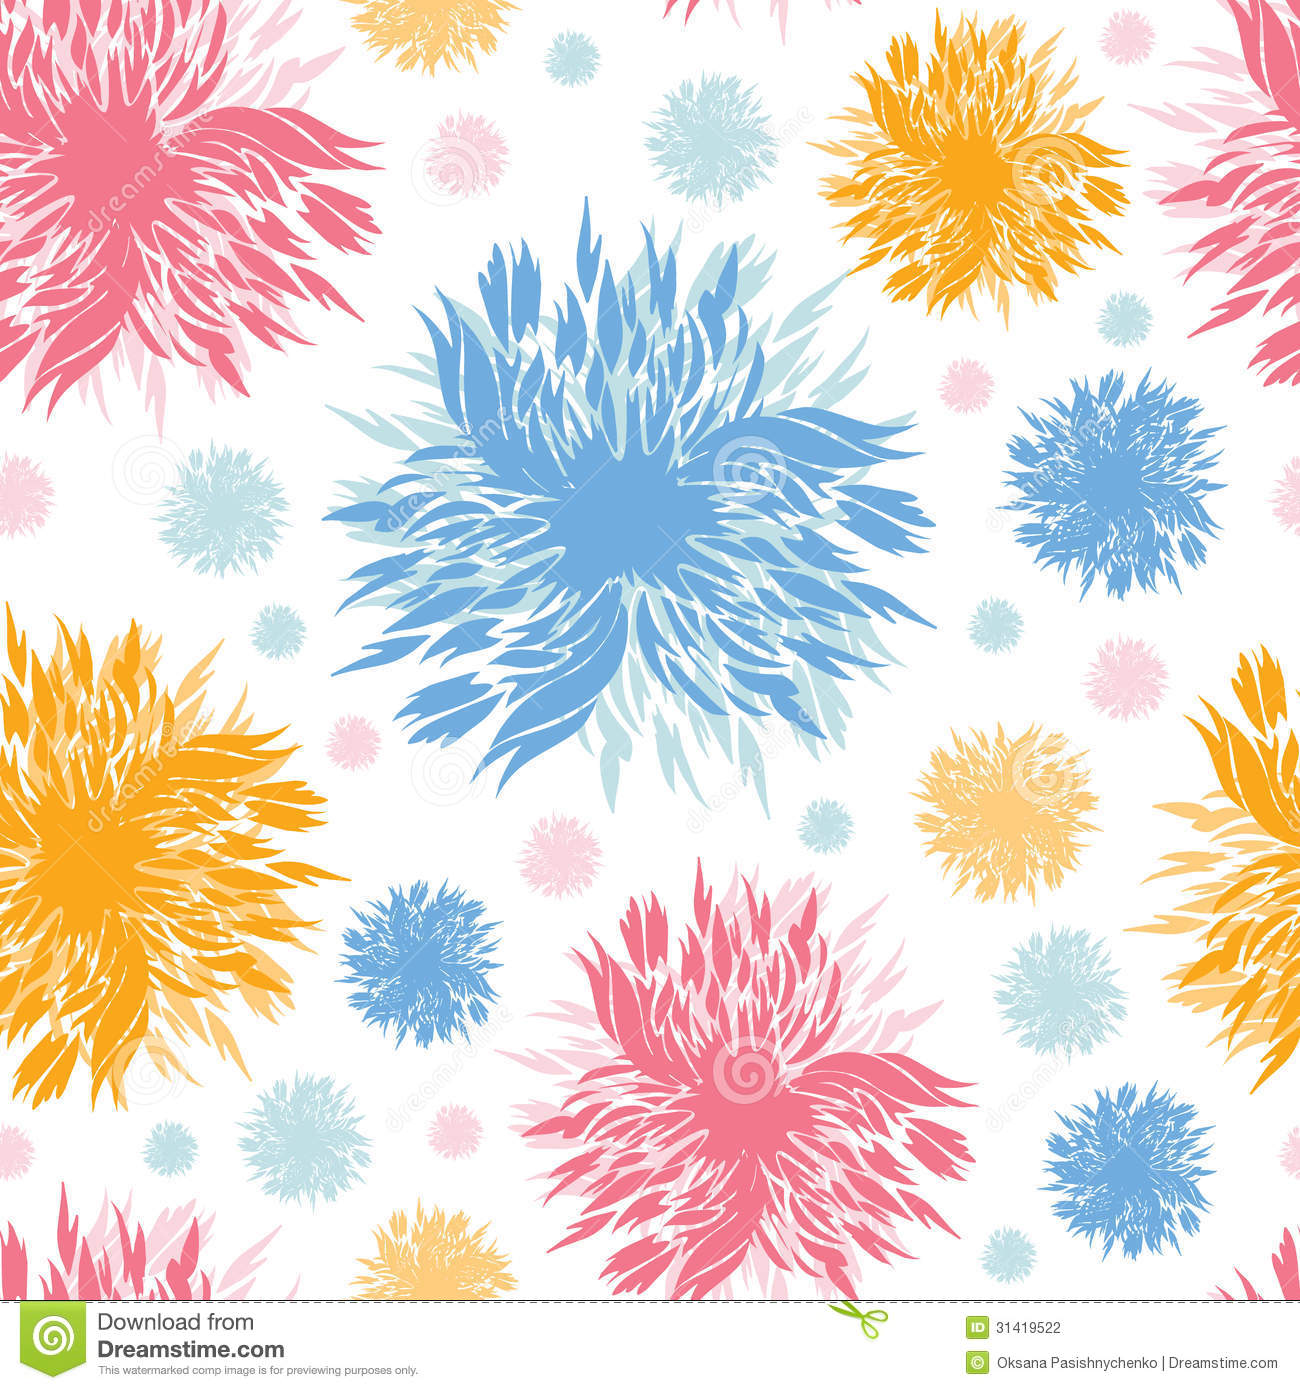 Abstract Flower Background With Decoration Elements For: Abstract Paint Flowers Seamless Pattern Background Stock